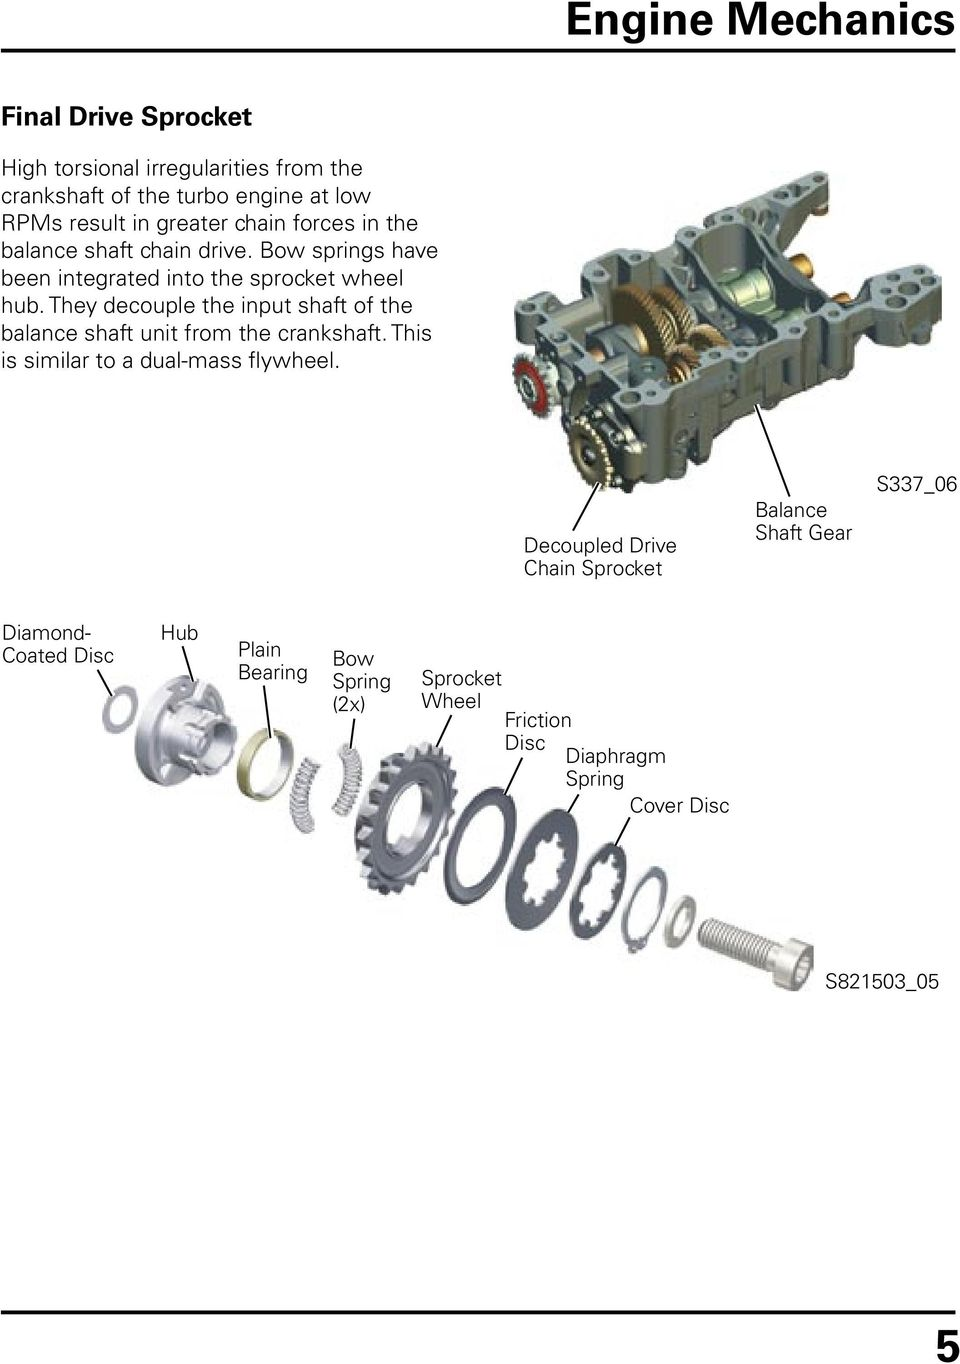 The 20l Fsi Turbocharged Engine Design And Function Pdf Turbo Diagram They Decouple Input Shaft Of Balance Unit From Crankshaft This Is